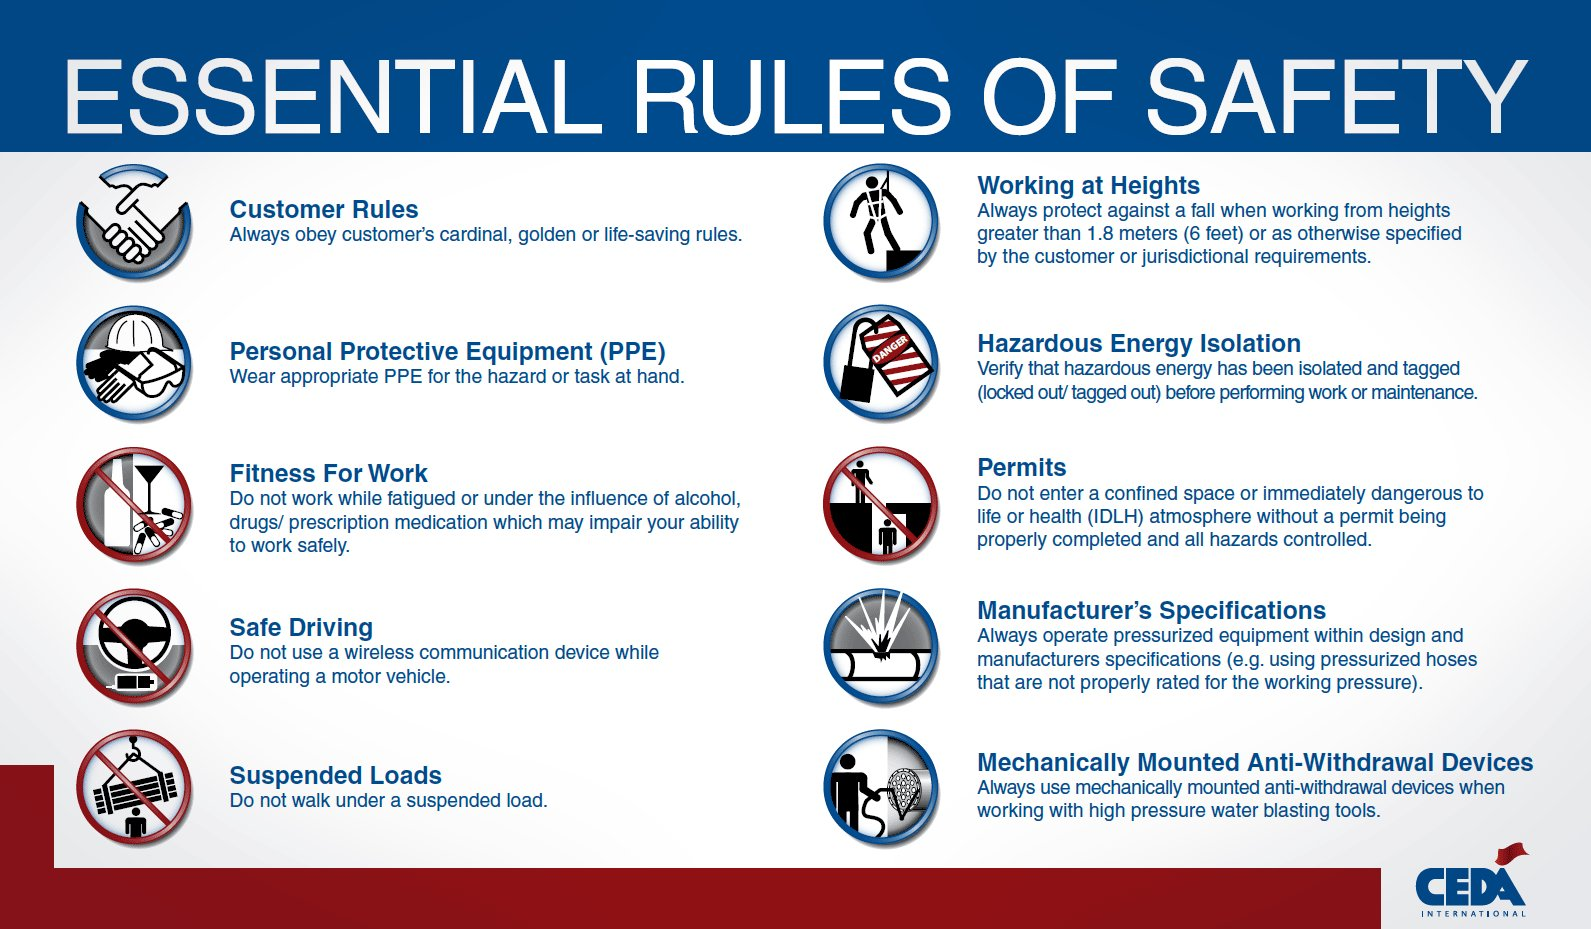 Muhammad Ali On Twitter Quot Essential Rules Of Safety Https